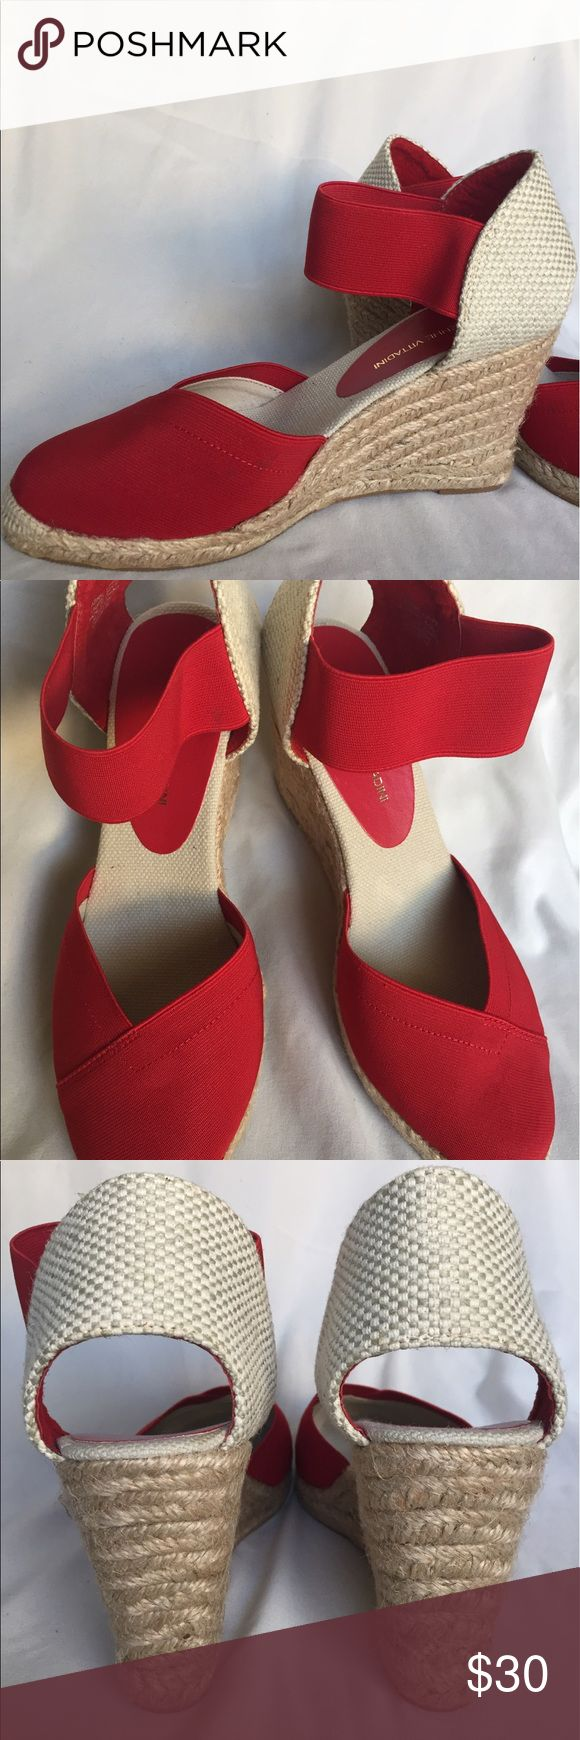 Adrienne Vittadini Wedges Adrienne Vittadini Wedges - Red. Size 8. Stretch Linen. Brand new in box. Never worn. Adrienne Vittadini Shoes Wedges